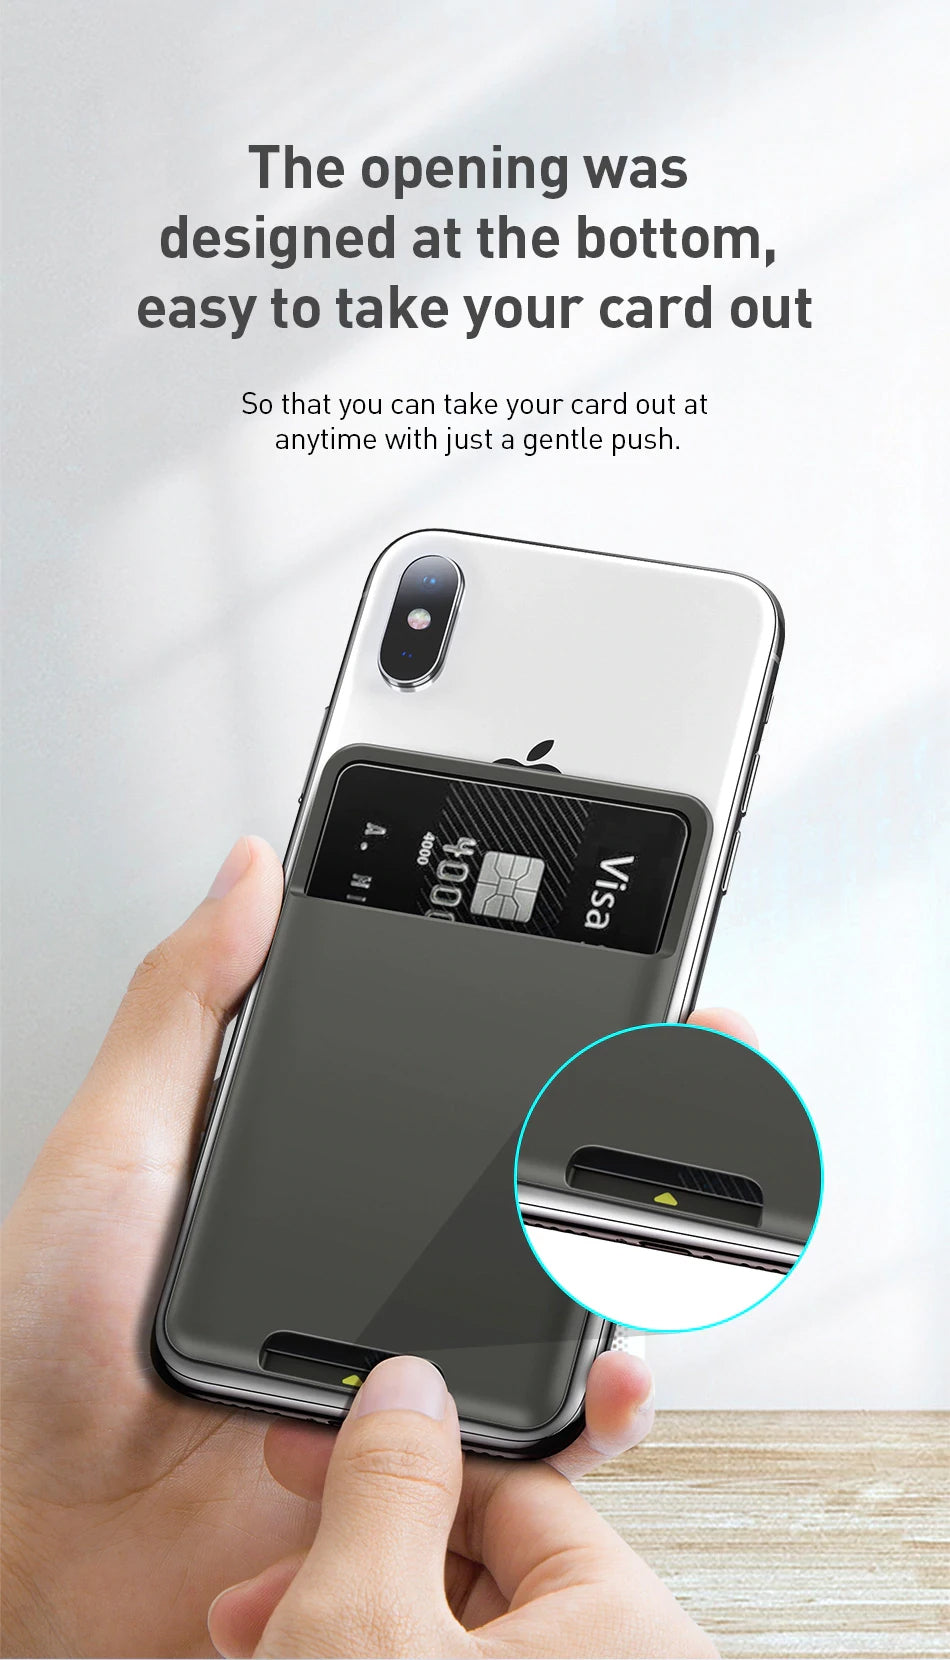 Universal Phone Slot For Credit Cards Stick-On Card Holder For iPhone Fits Most Phones 3M Sticker Card Holder Card Pocket Luxury Silicone Pouch